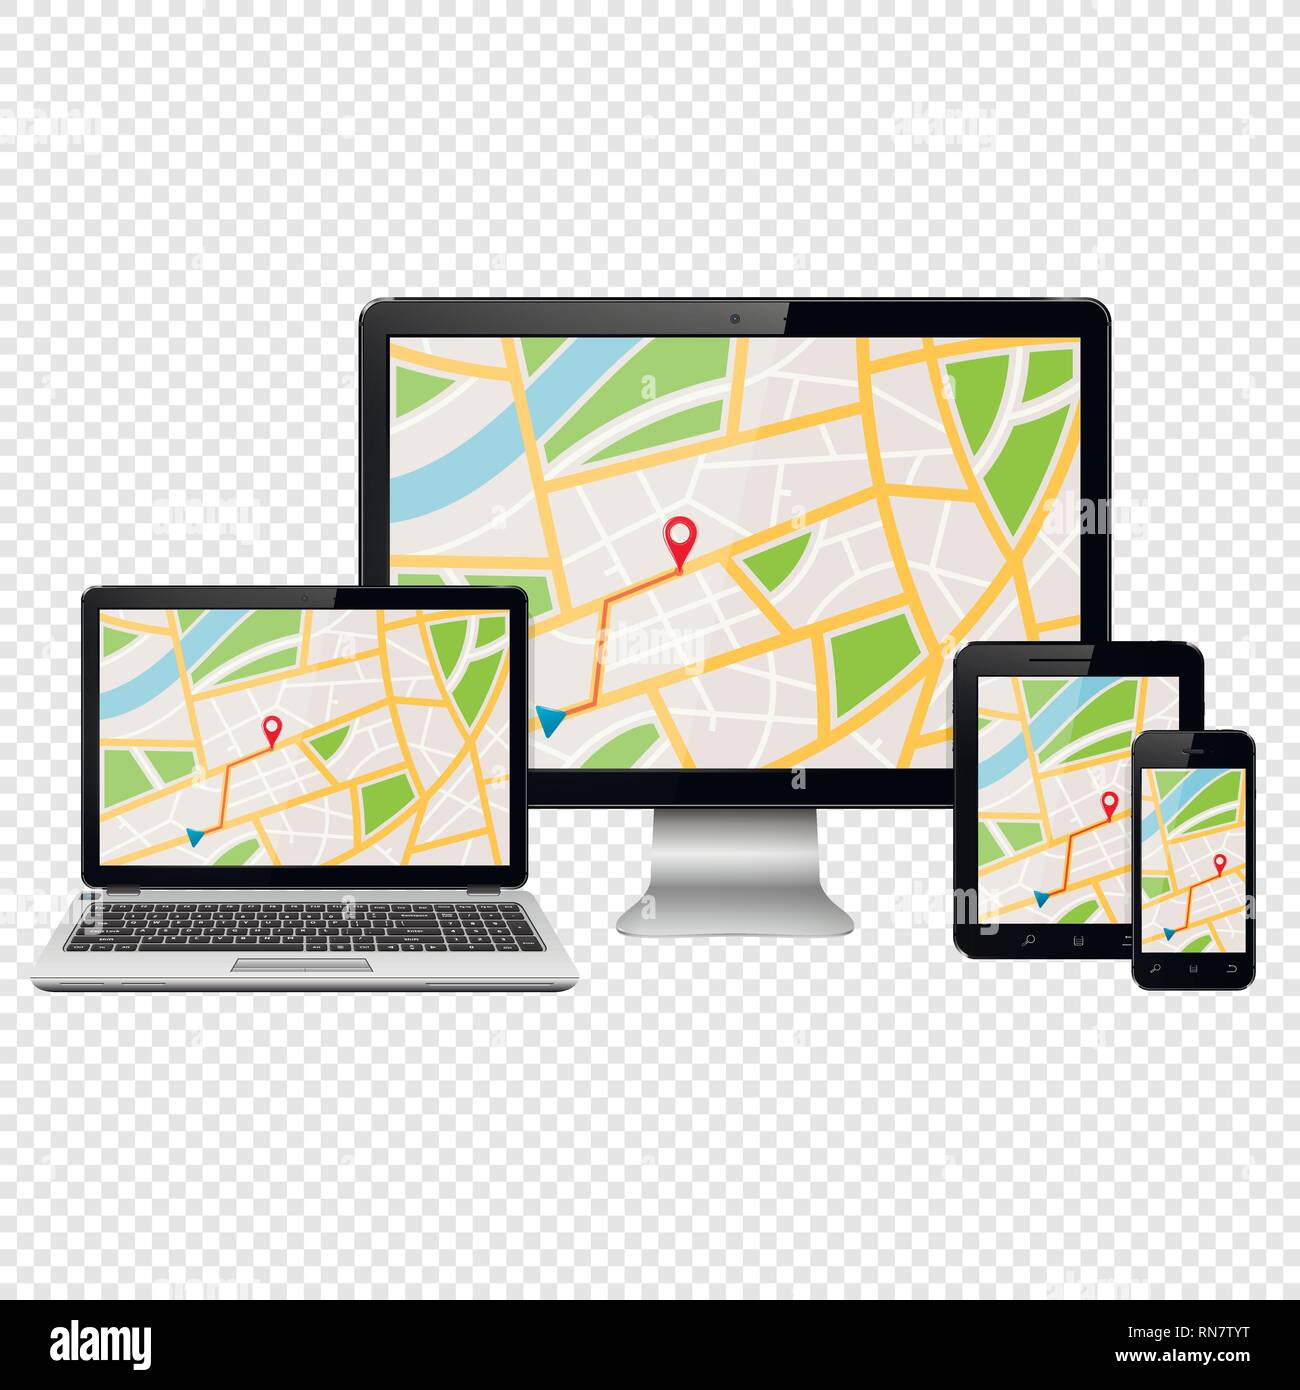 GPS map on modern digital devices isolated on transparent background - Stock Vector